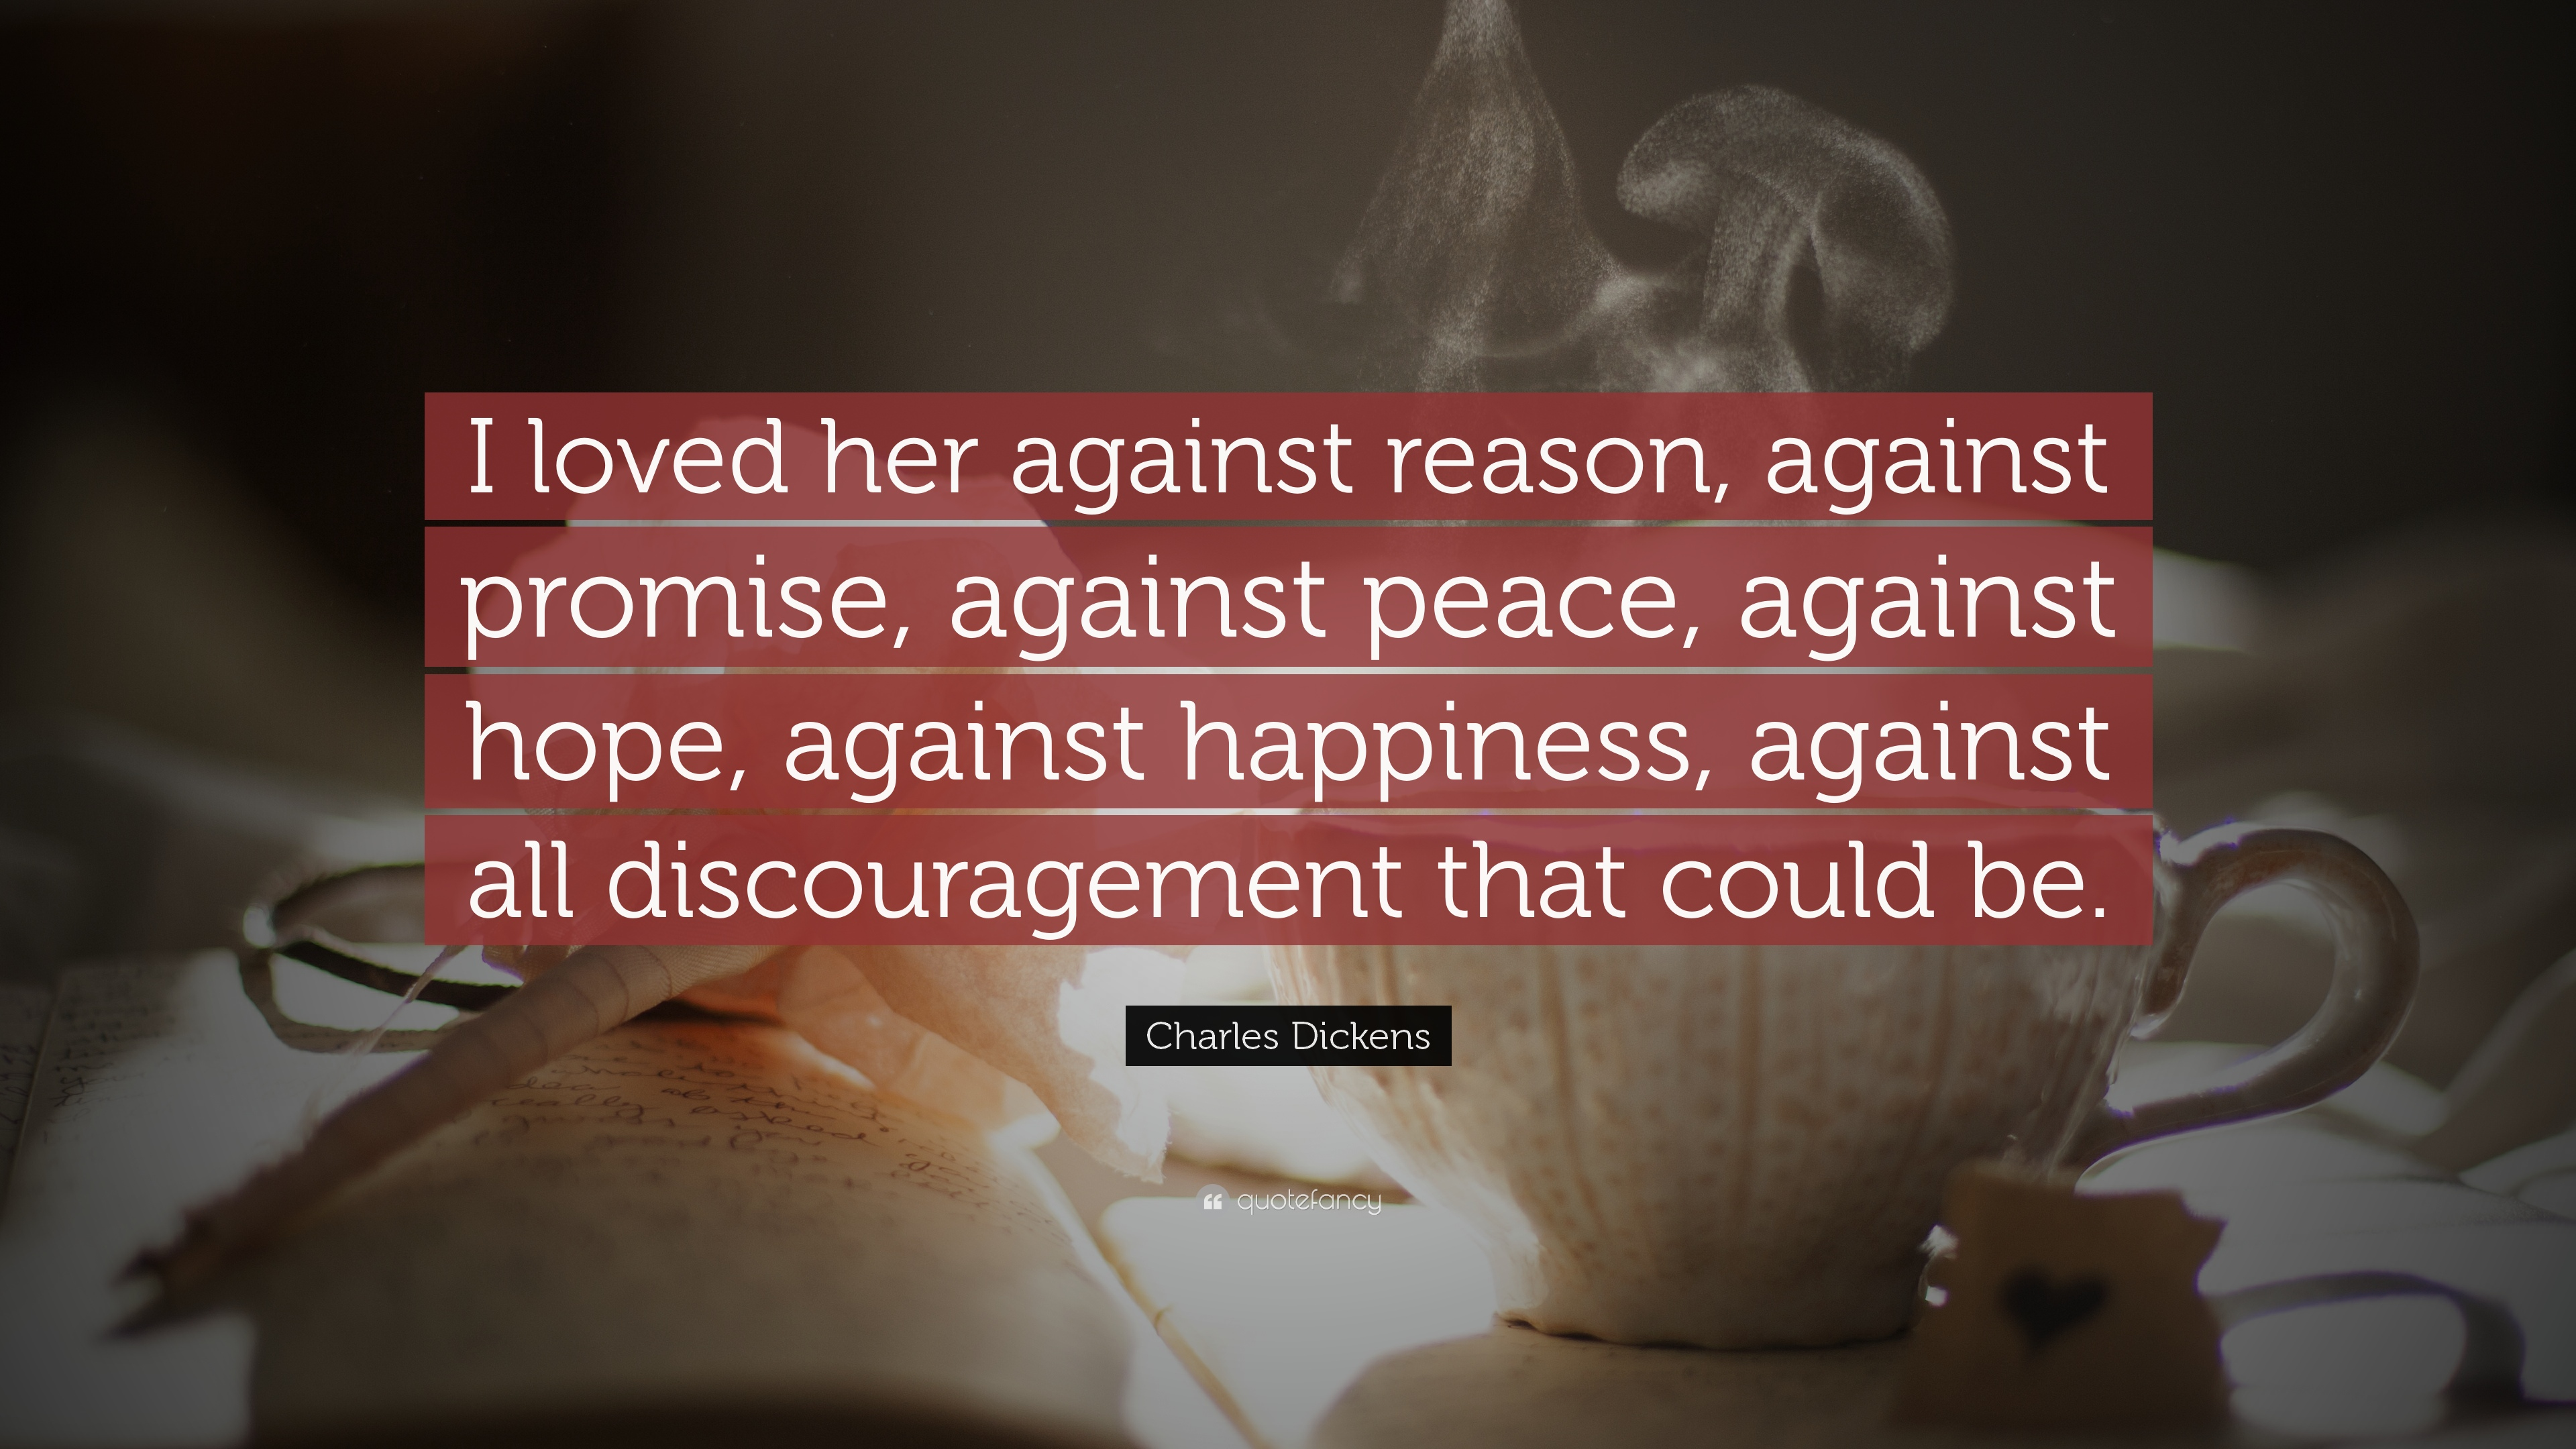 [Image] I loved the person against reason, against promise….. The Great Charles Dickens